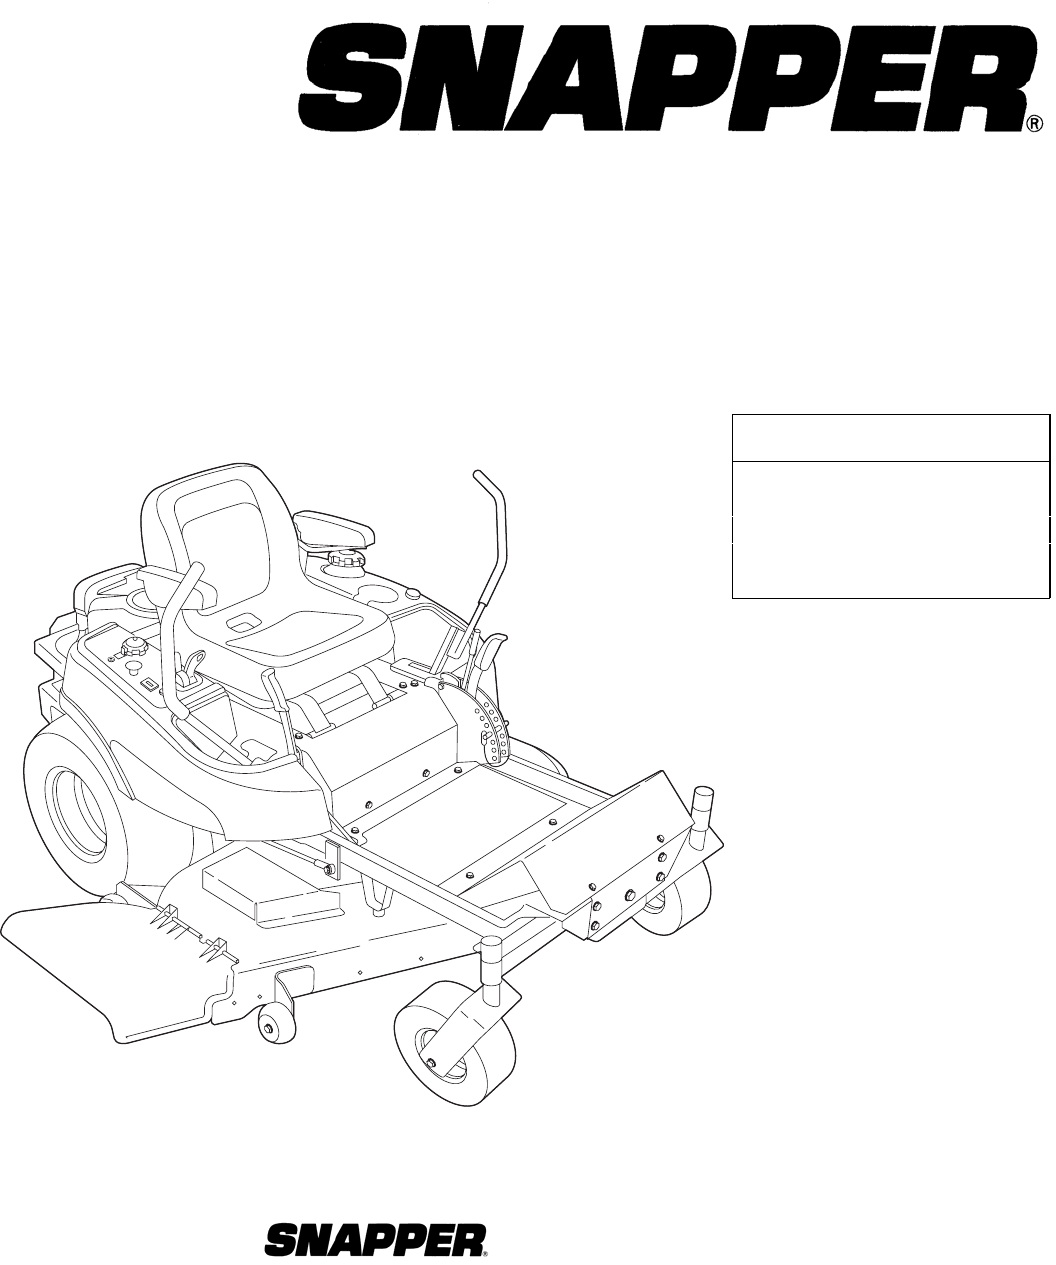 Snapper Lawn Mower ZT19441KWV (5900609) User Guide